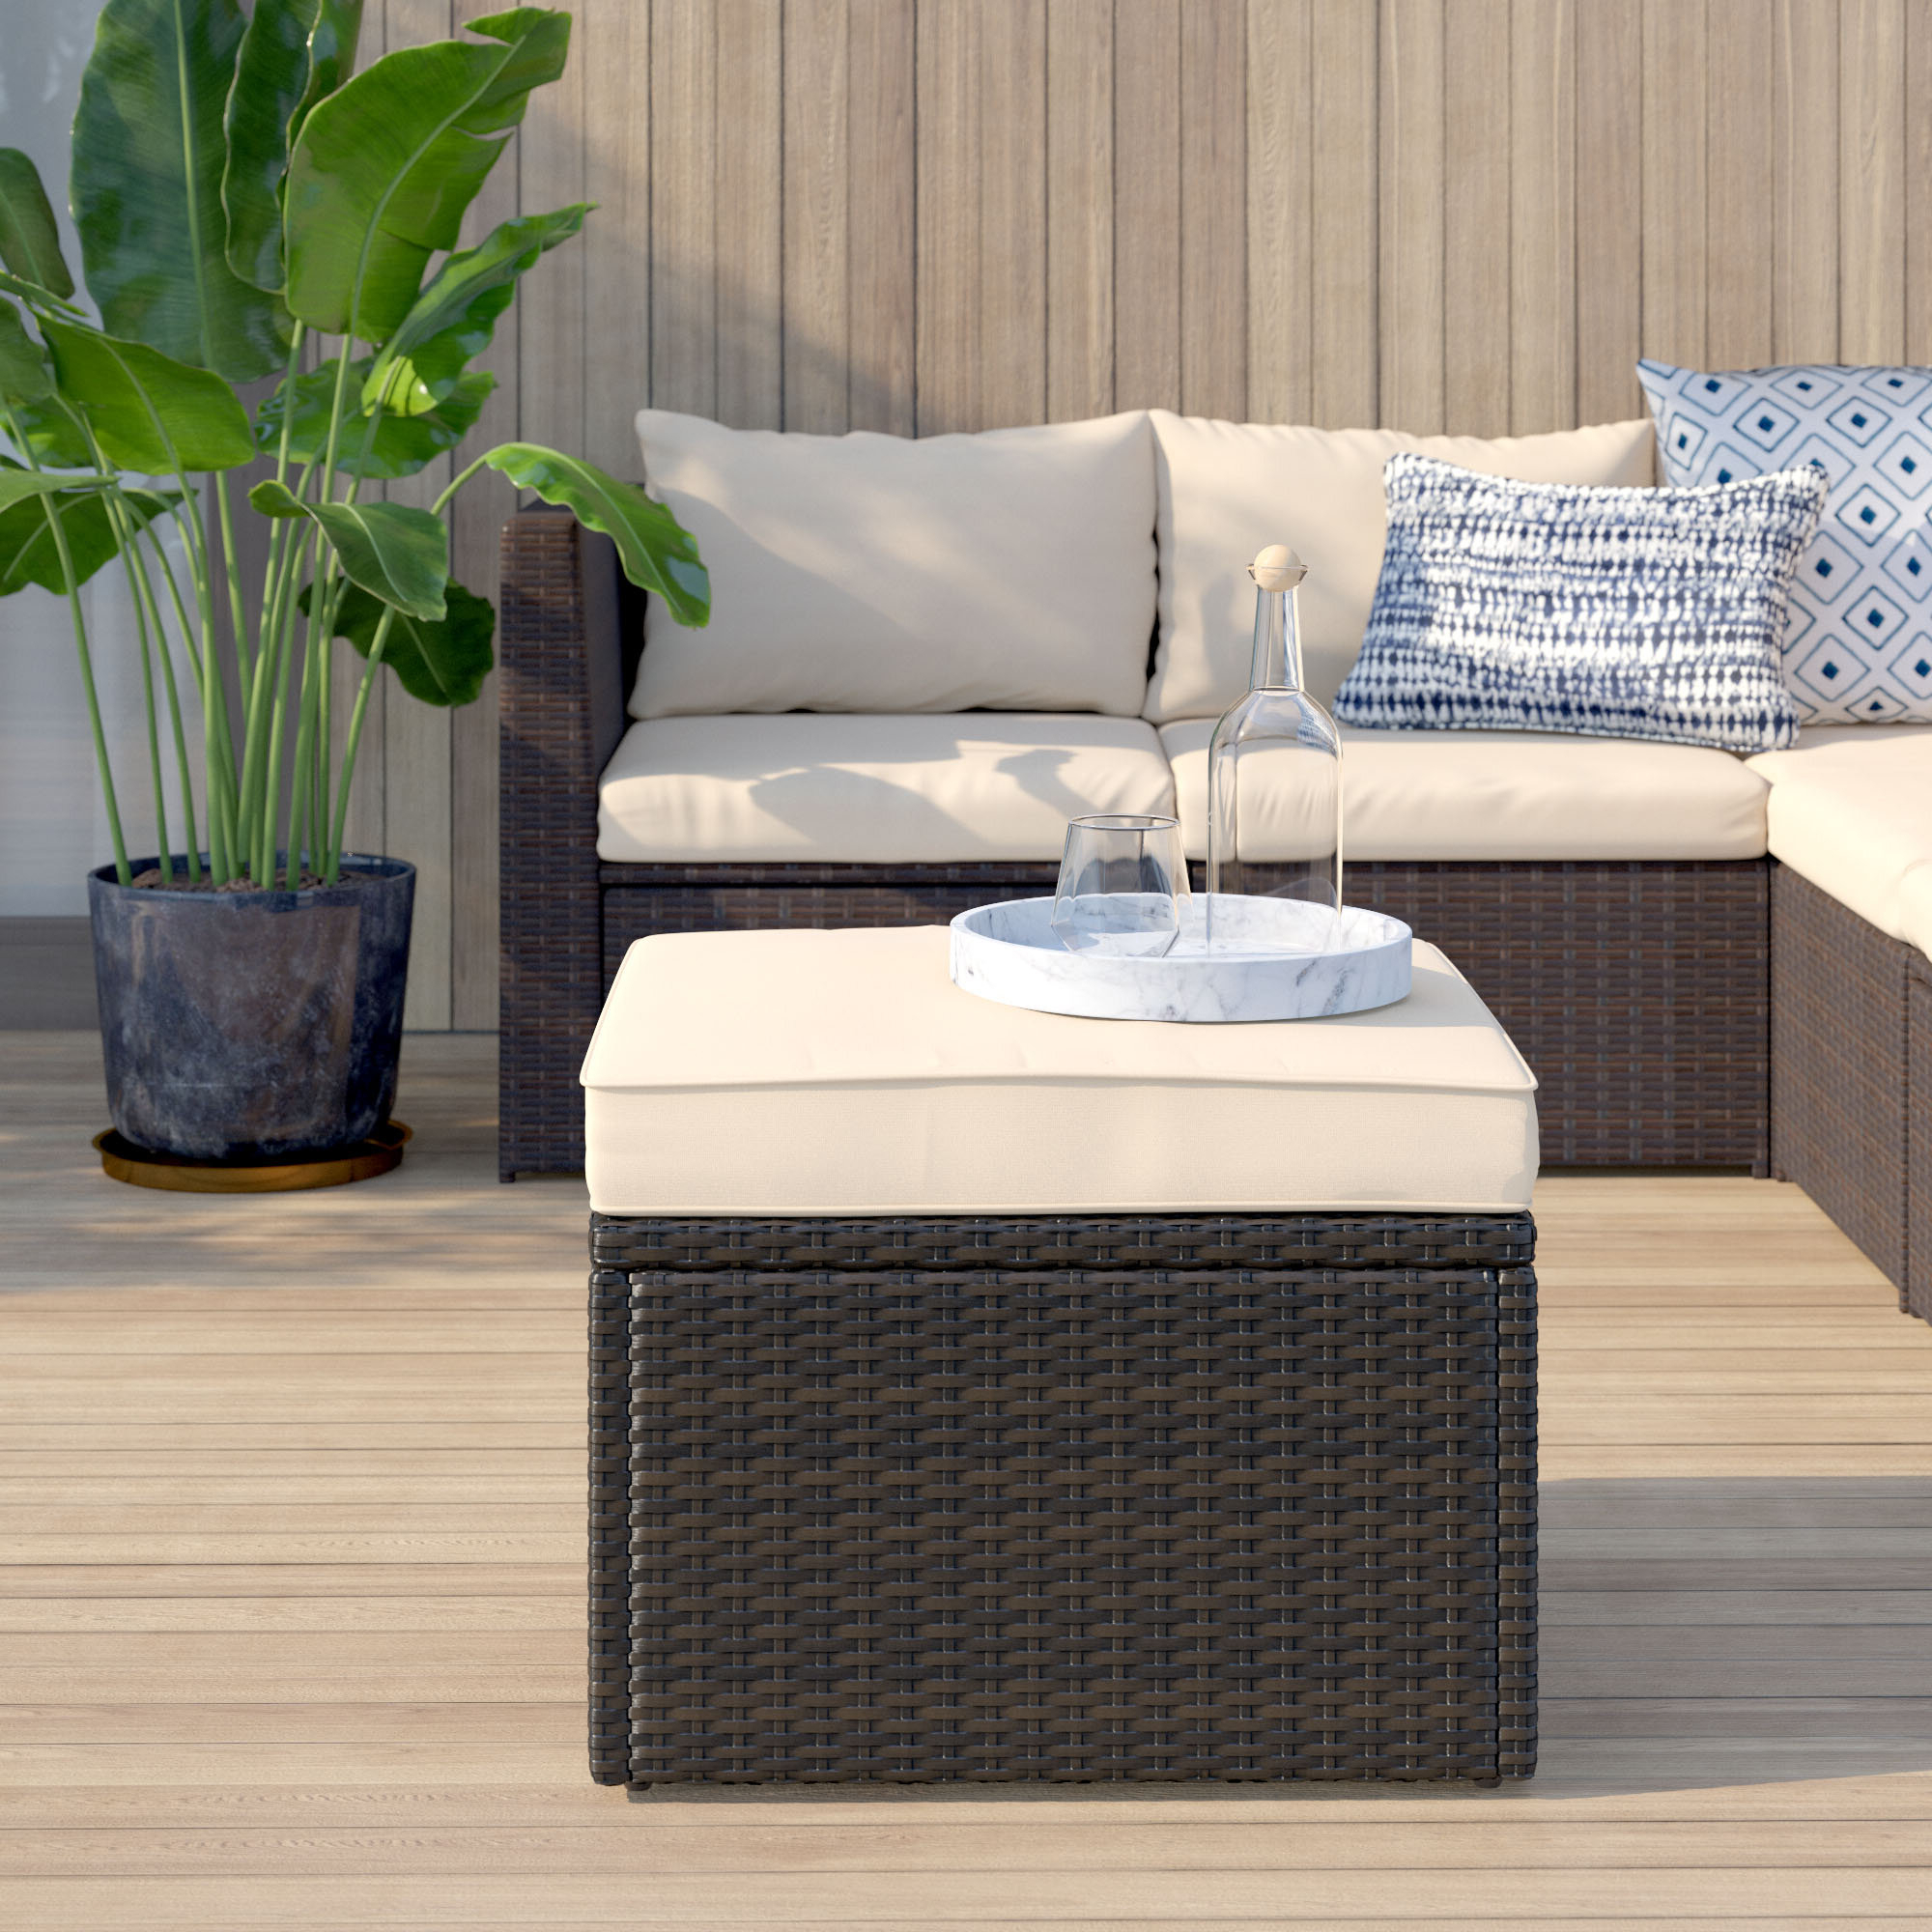 Widely Used Belton Patio Sofas With Cushions In Mercury Row Belton Outdoor Ottoman With Cushion & Reviews (Gallery 22 of 25)